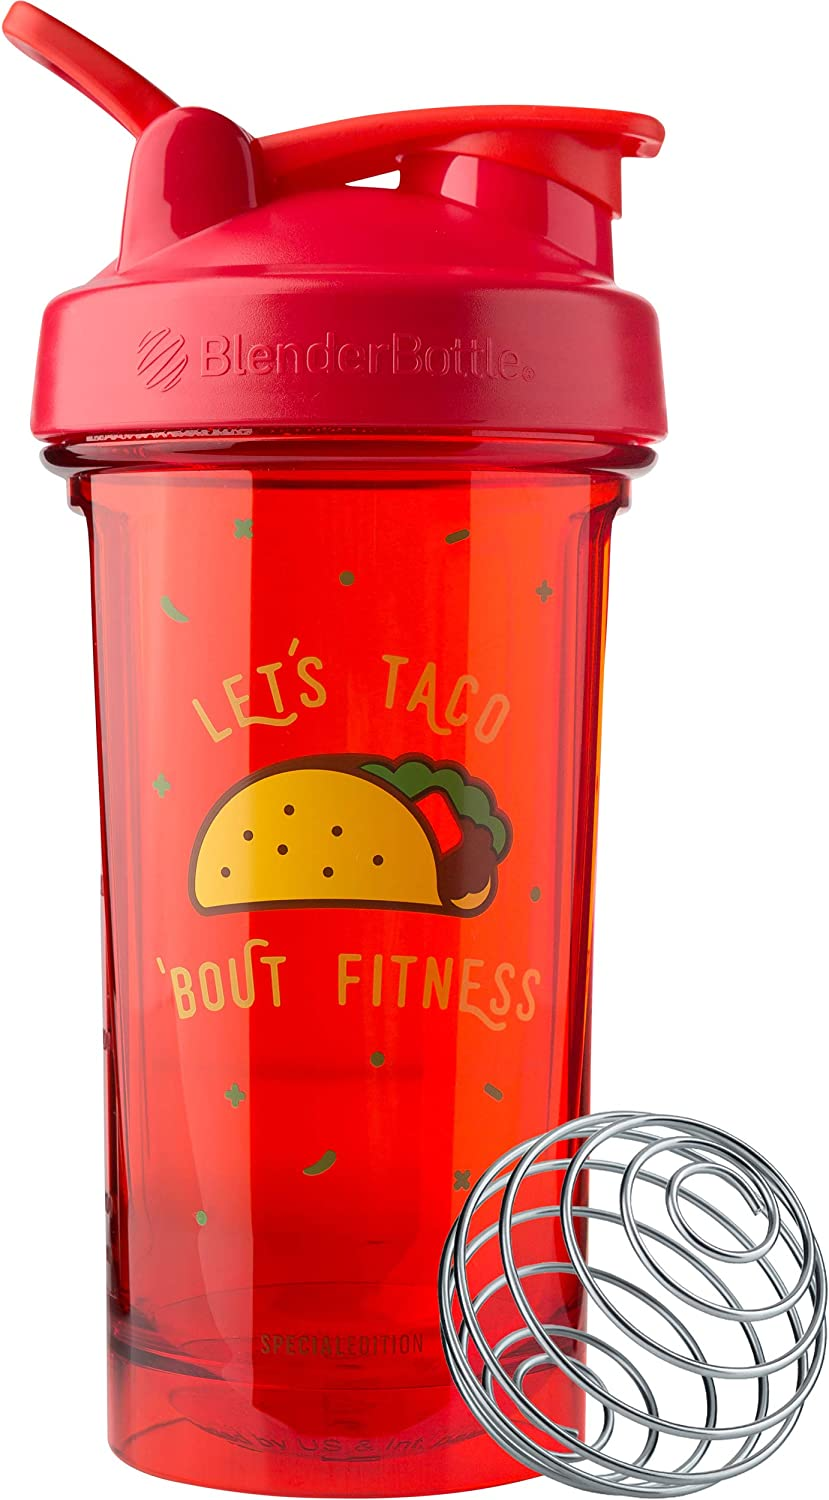 BlenderBottle C04201 Pro Series Foodie Shaker Bottle, 24oz, Let's Taco 'Bout Fitness